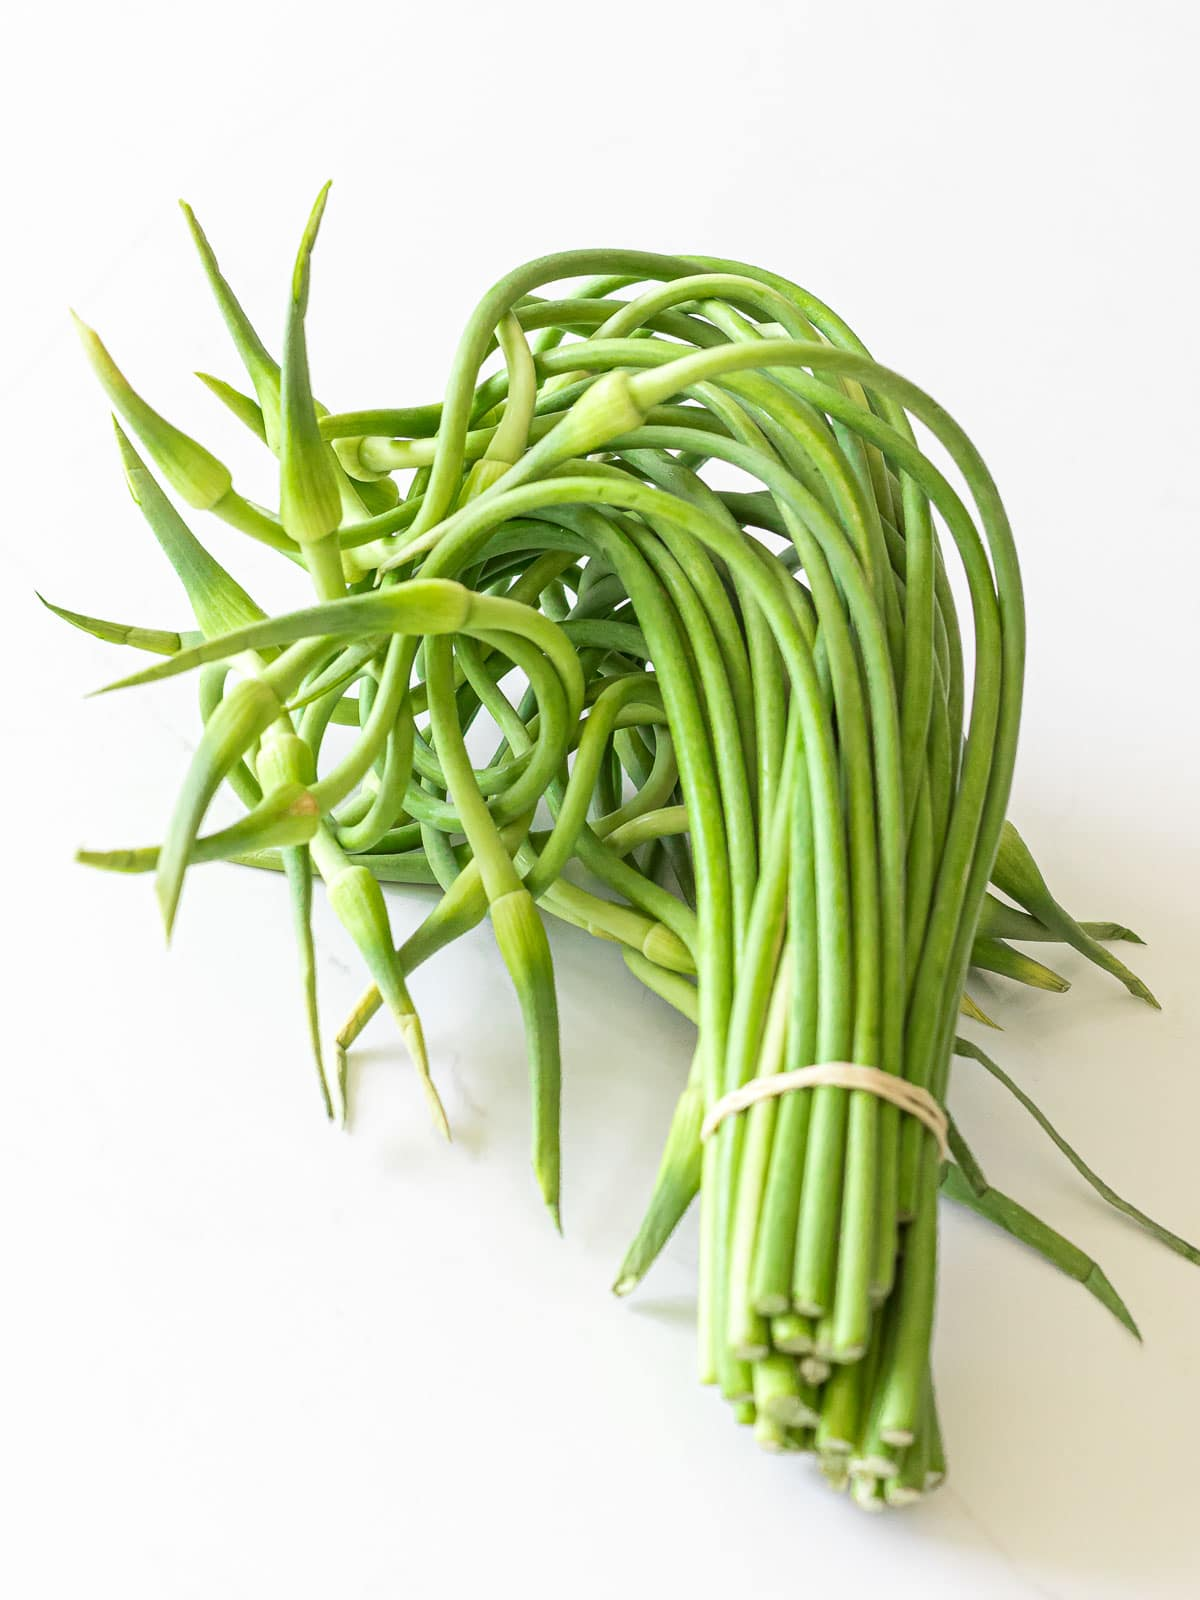 a bundle of garlic scapes on a white surface